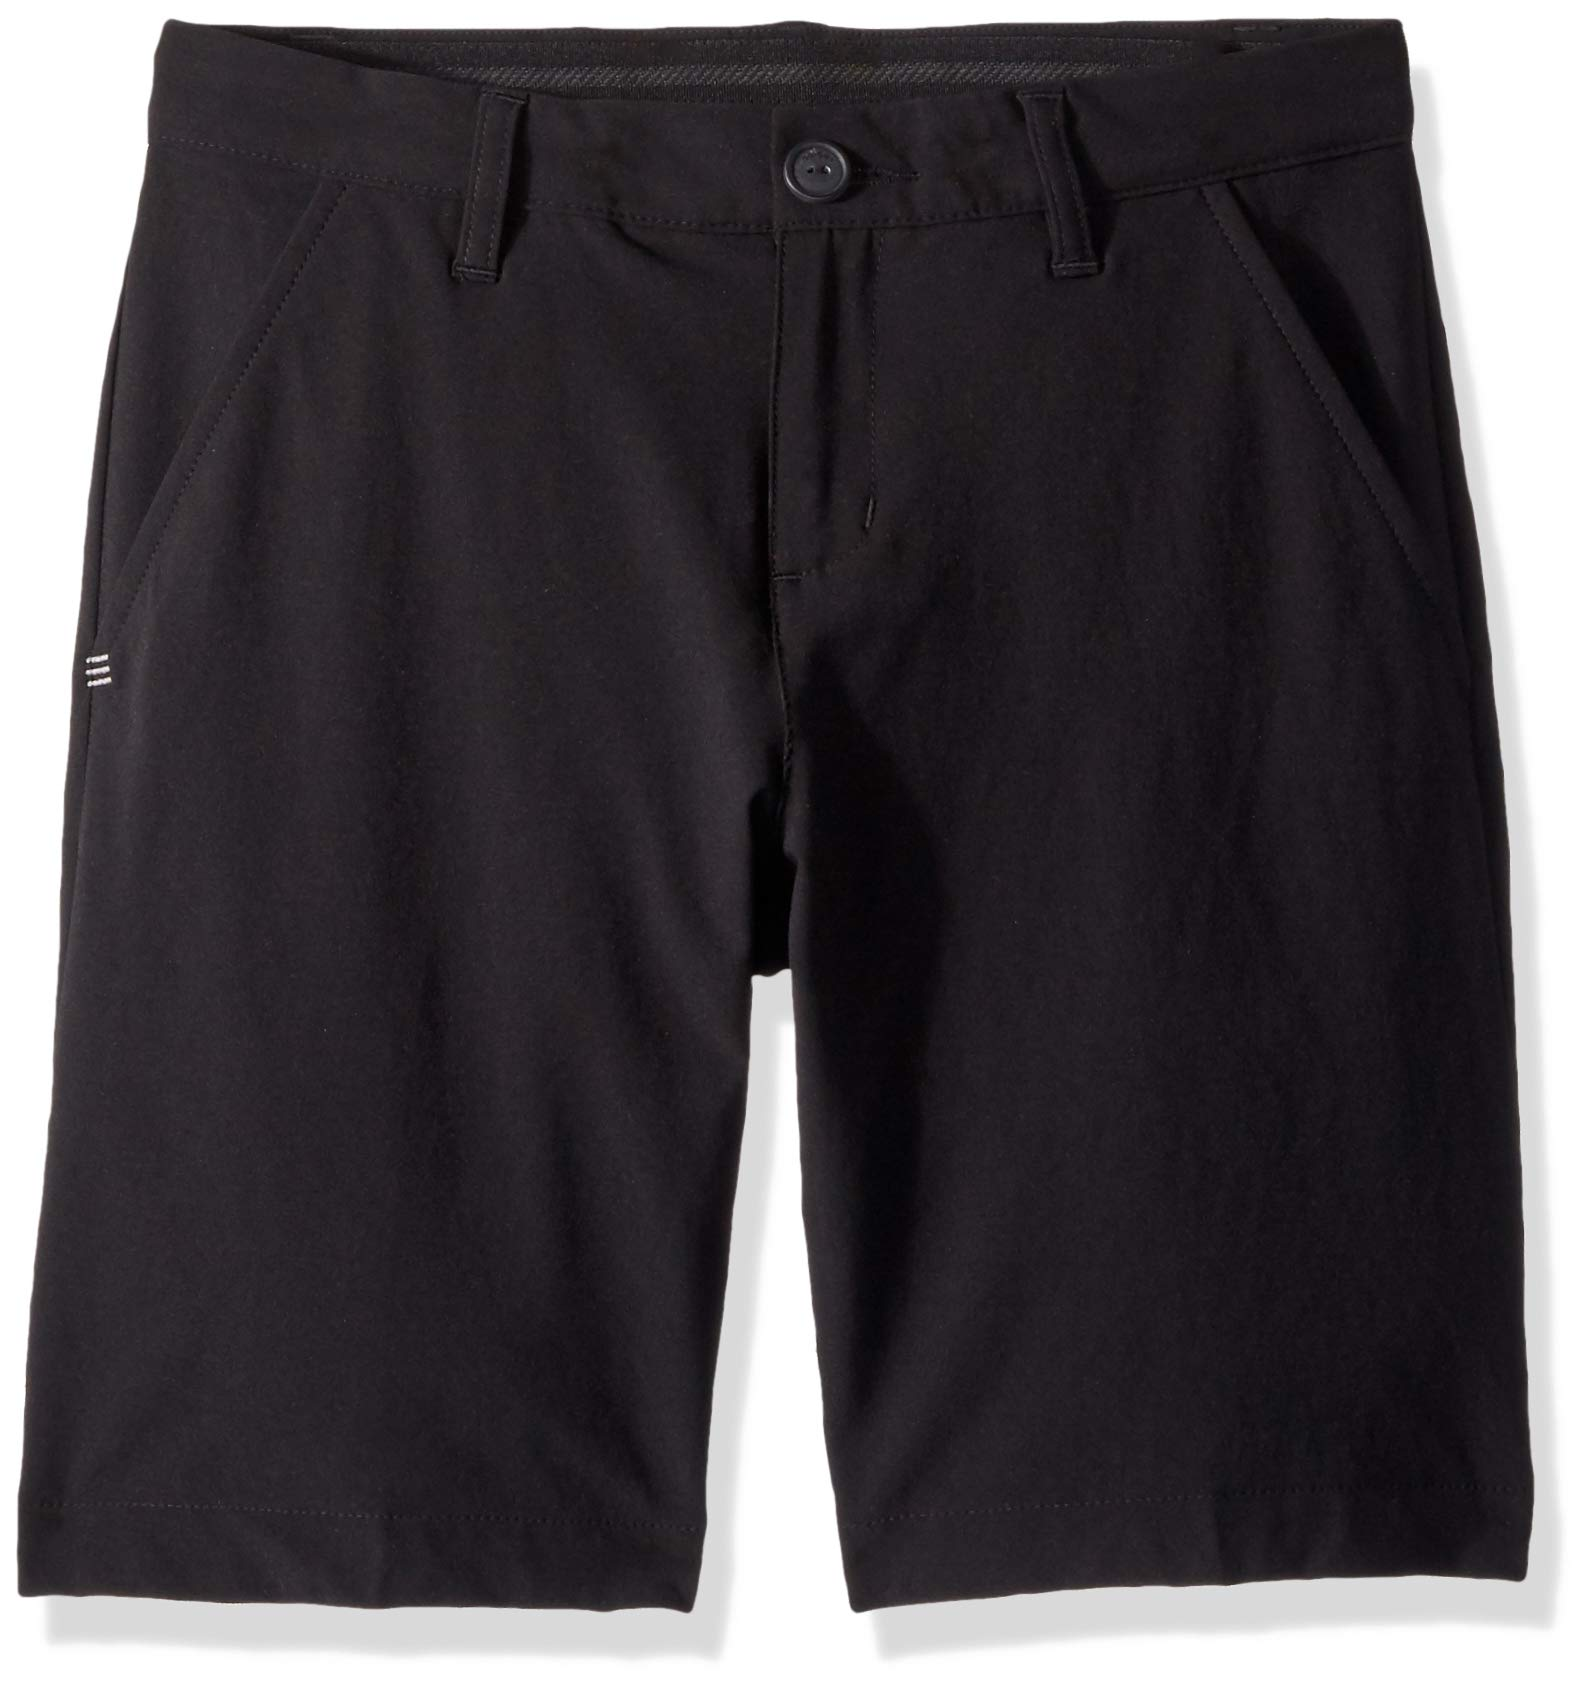 adidas Golf Solid Golf Short, Black, Small by adidas